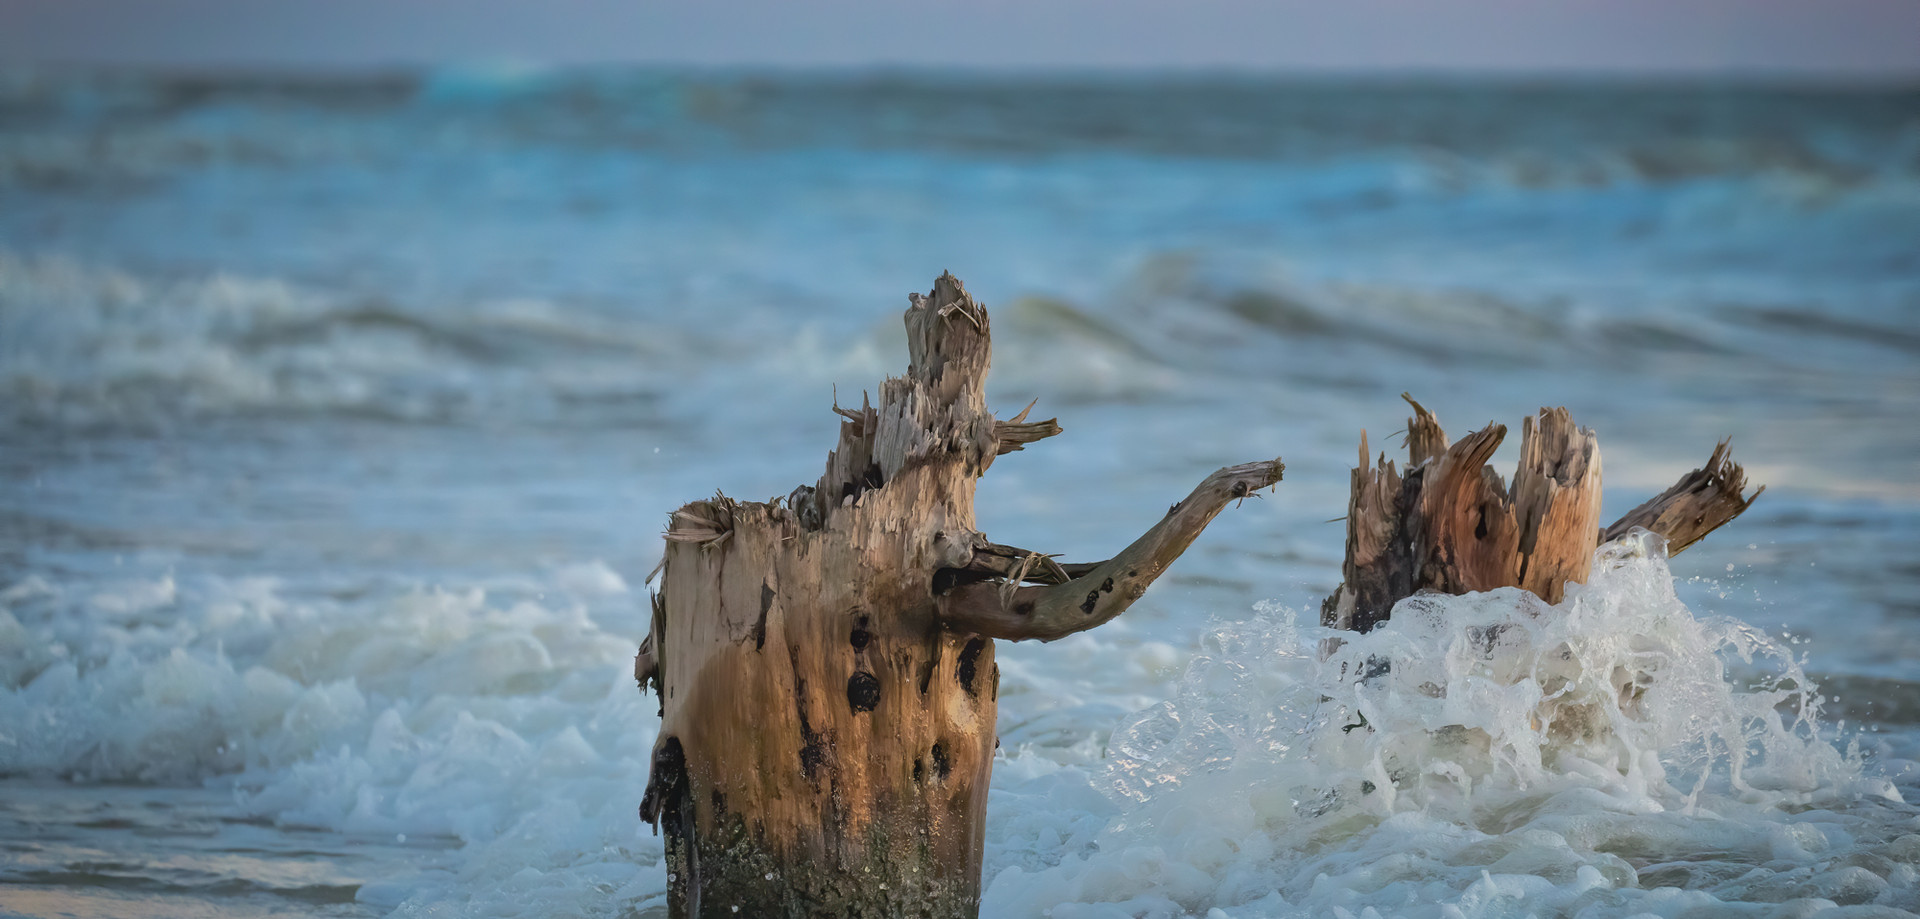 Water funnels around a stump